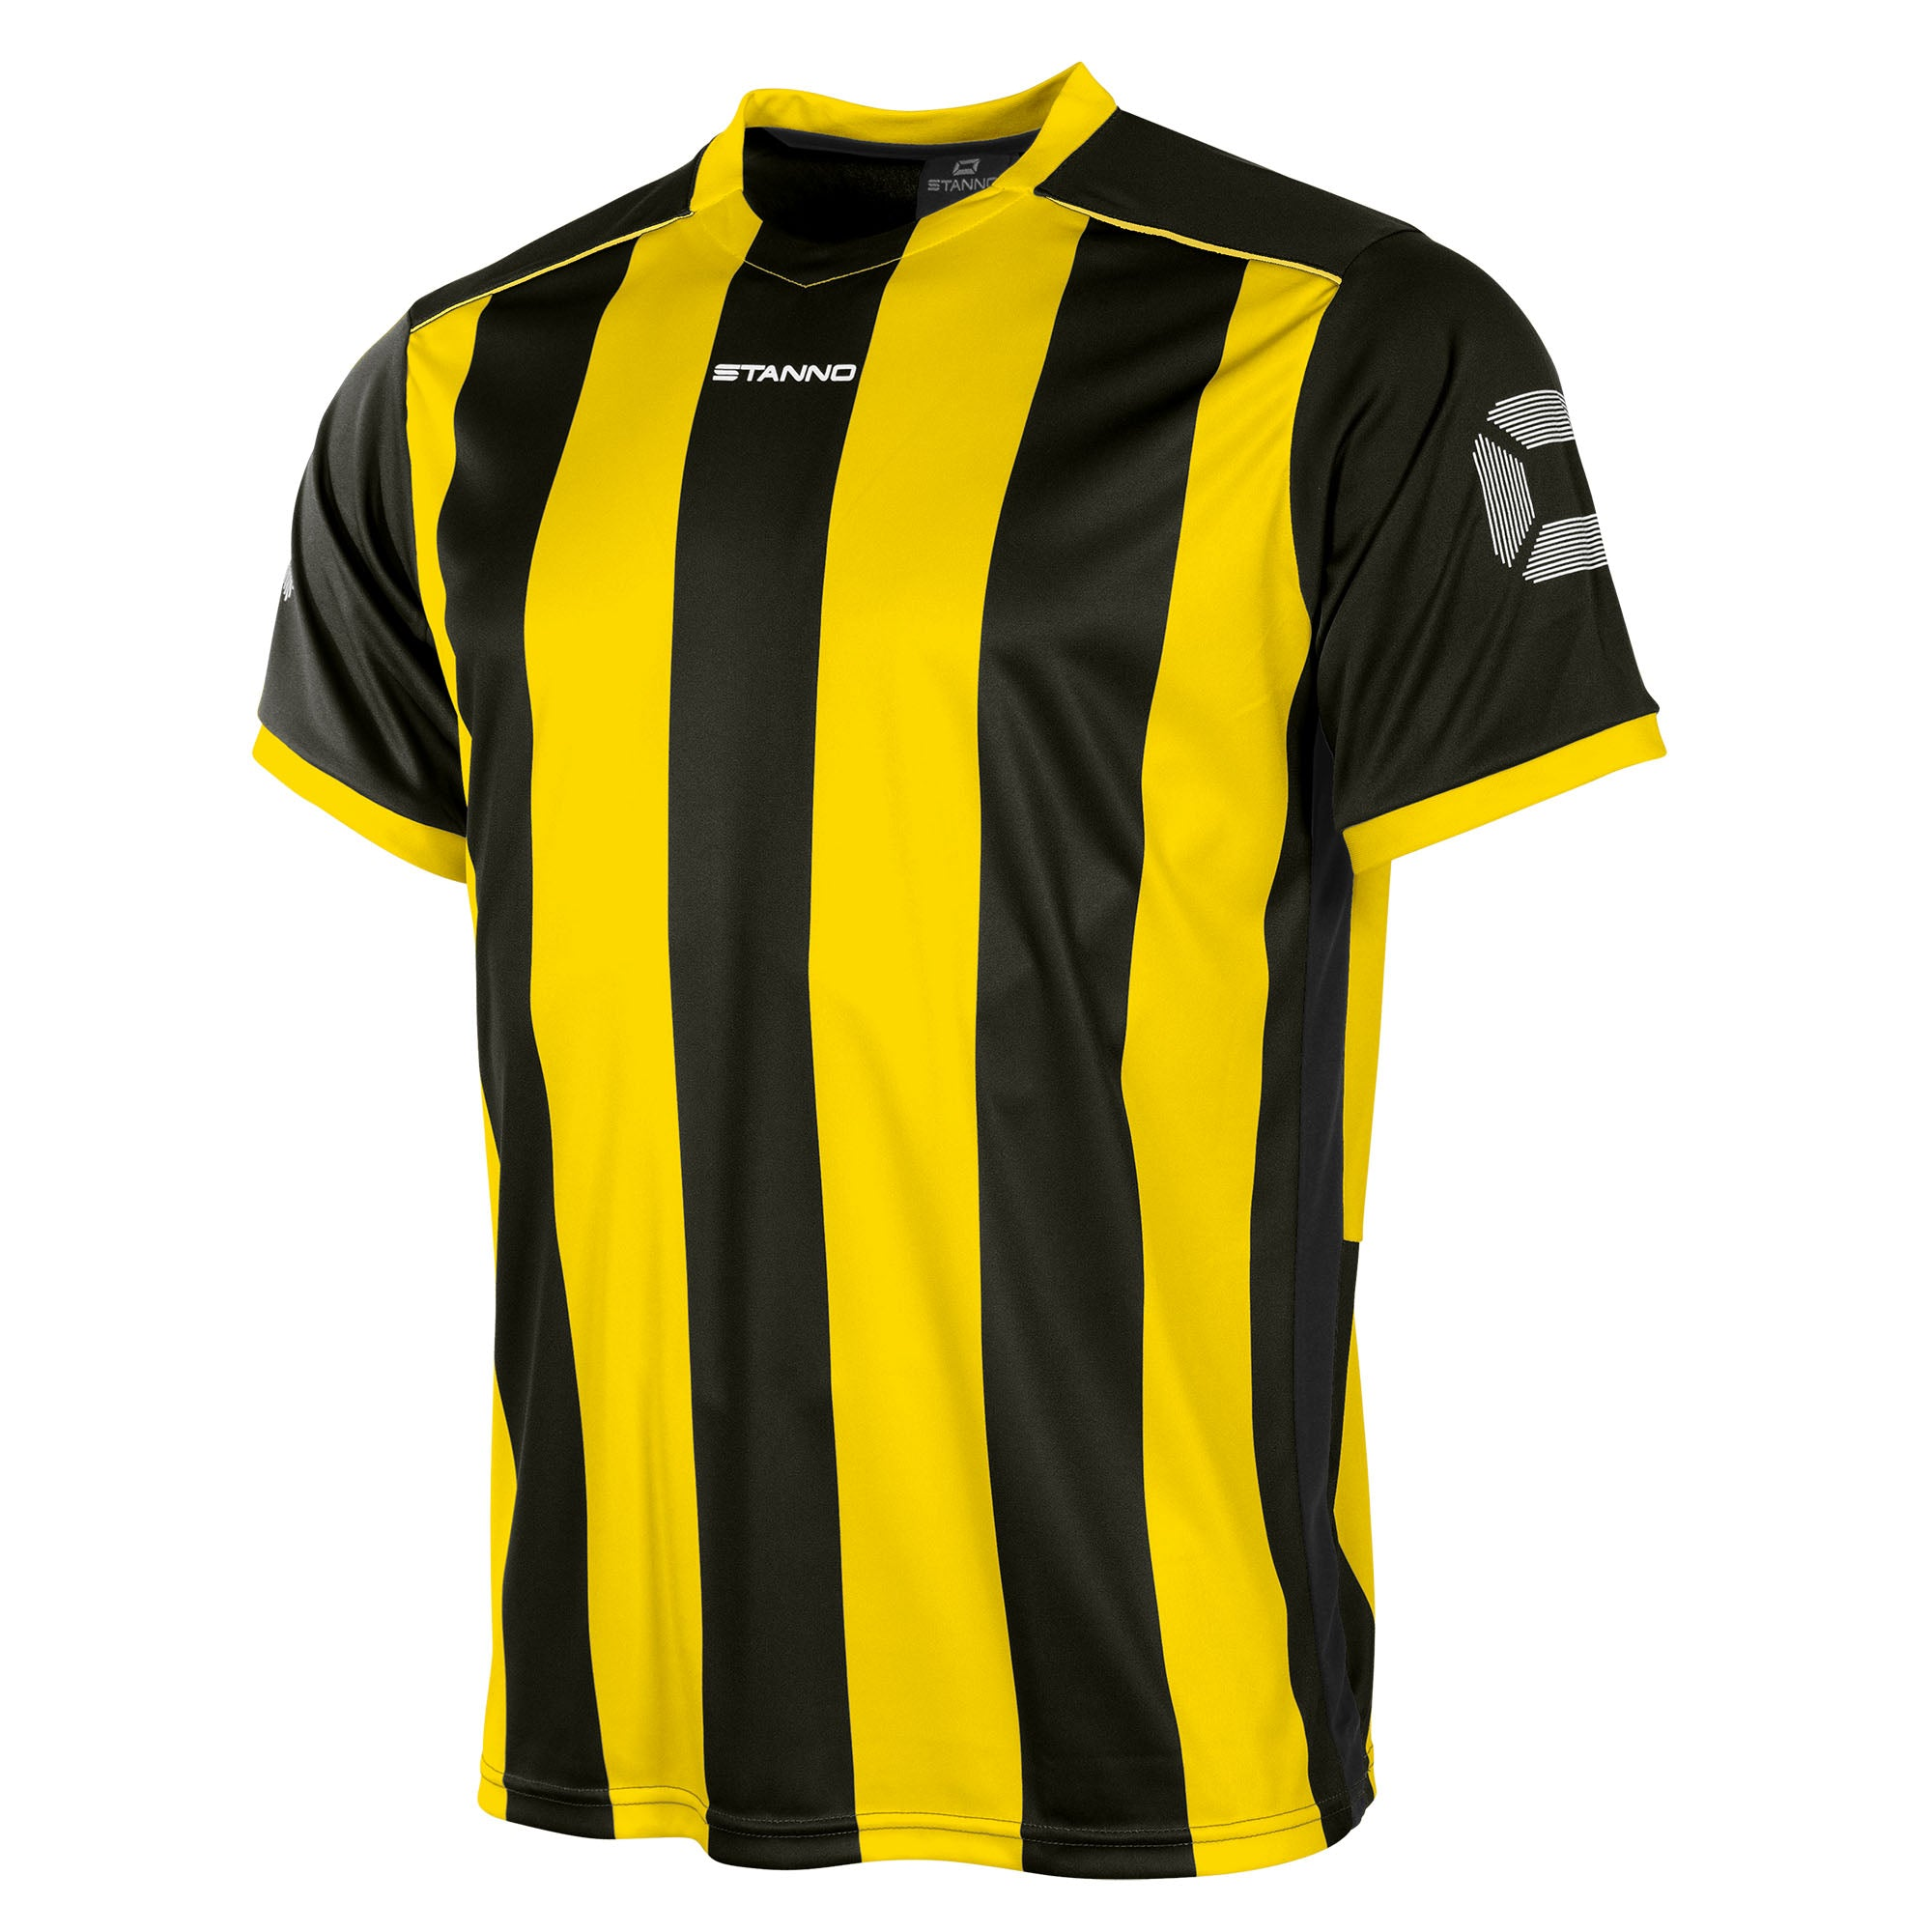 Front of Stanno Brighton short sleeved shirt in black and yellow vertical stripes, central printed Stanno text logo on the chest